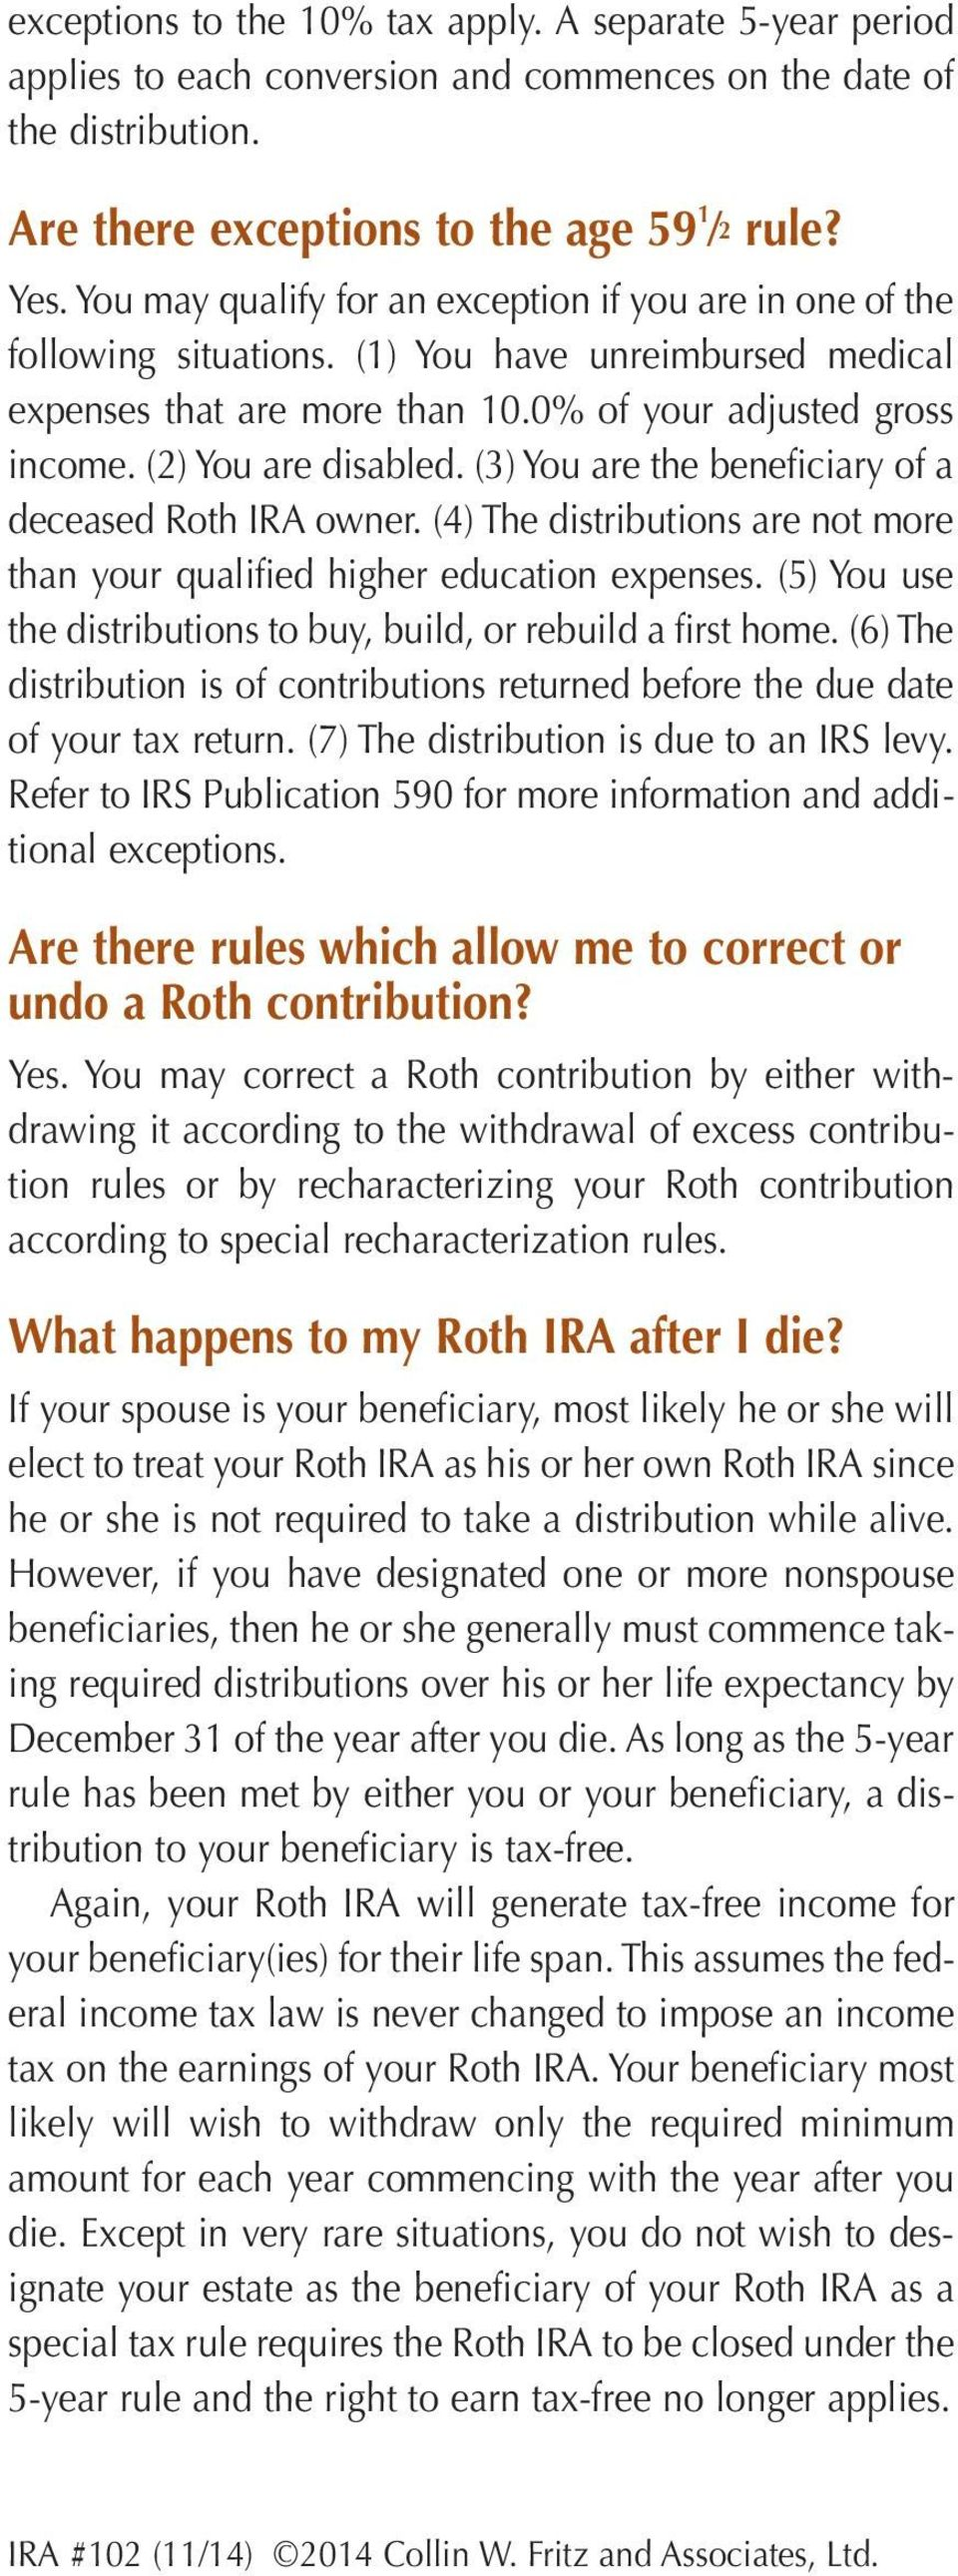 (3) You are the beneficiary of a deceased Roth IRA owner. (4) The distributions are not more than your qualified higher education expenses.